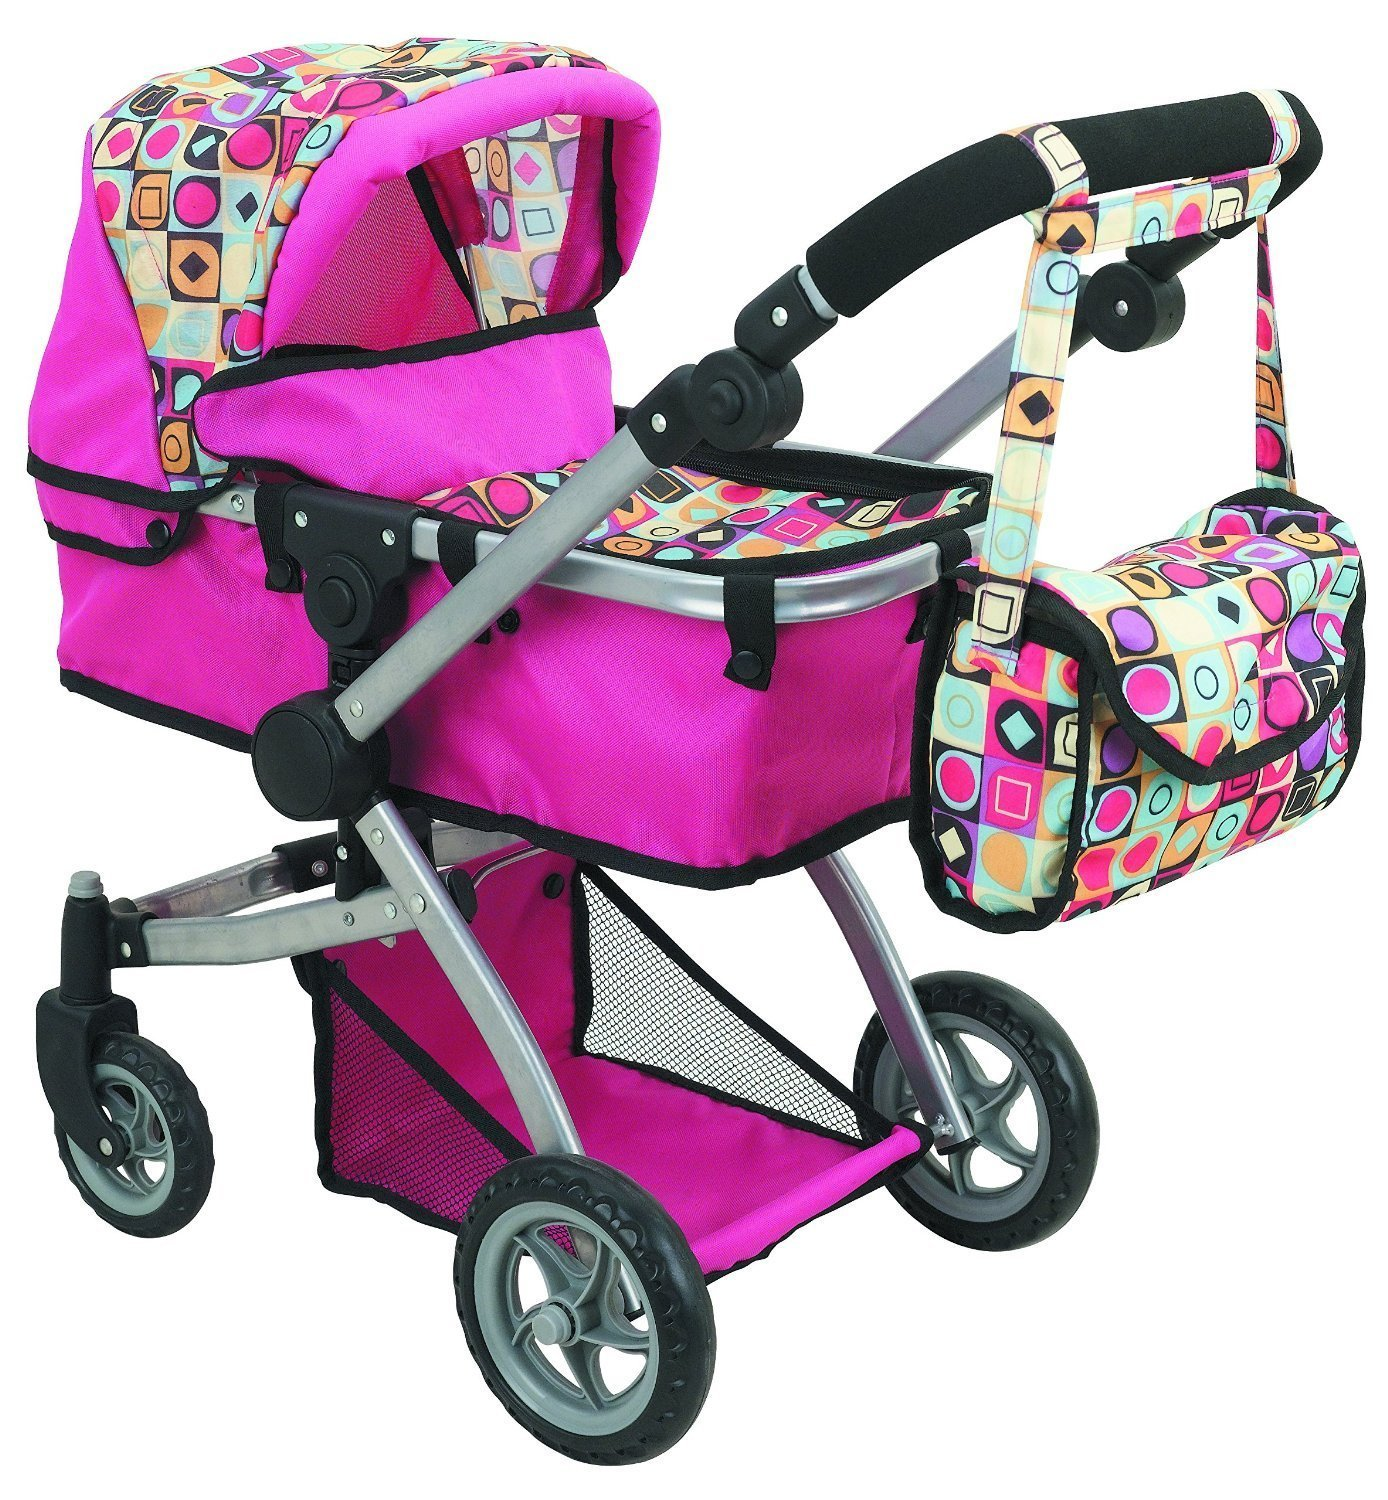 Deluxe Doll Stroller with Swiveling Wheels Adjustable Handle and Carriage Bag Walmart